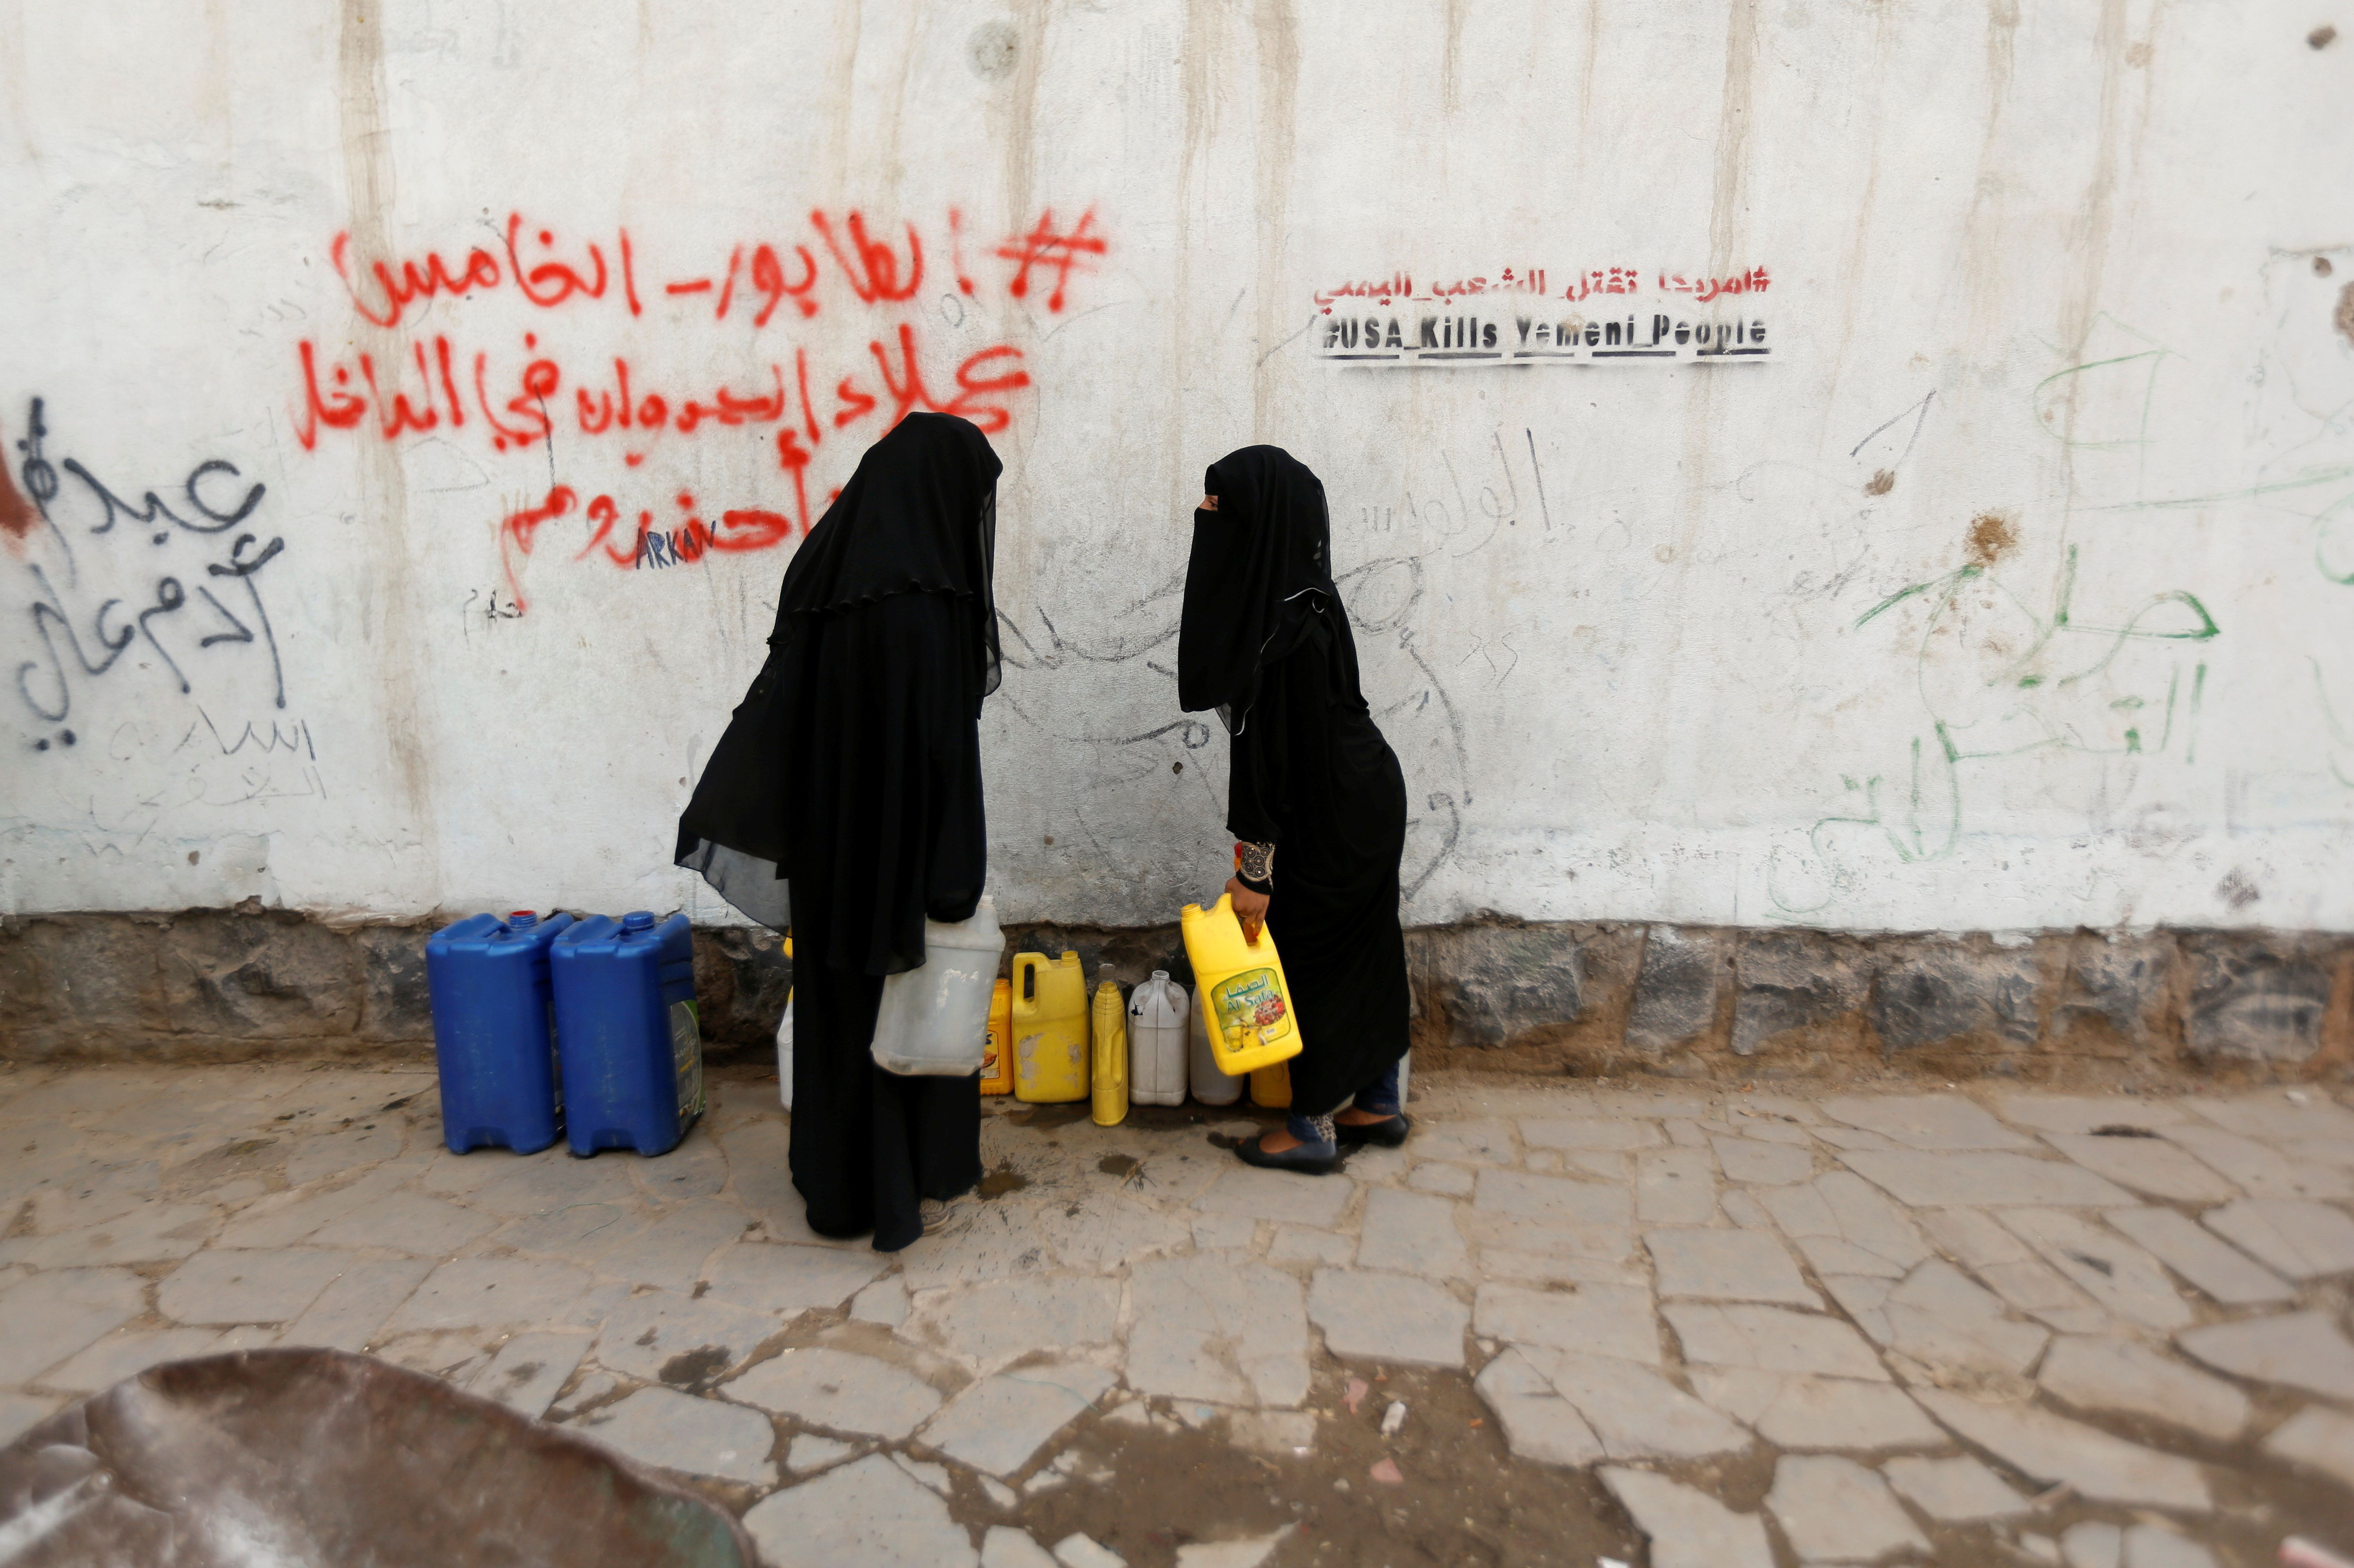 """Women carry jerrycans after they filled them up with drinking water from a charity tap, amid a cholera outbreak, in Sanaa, Yemen, July 10, 2017. REUTERS/Khaled Abdullah        SEARCH """"CHOLERA KHALED"""" FOR THIS STORY. SEARCH """"WIDER IMAGE"""" FOR ALL STORIES."""